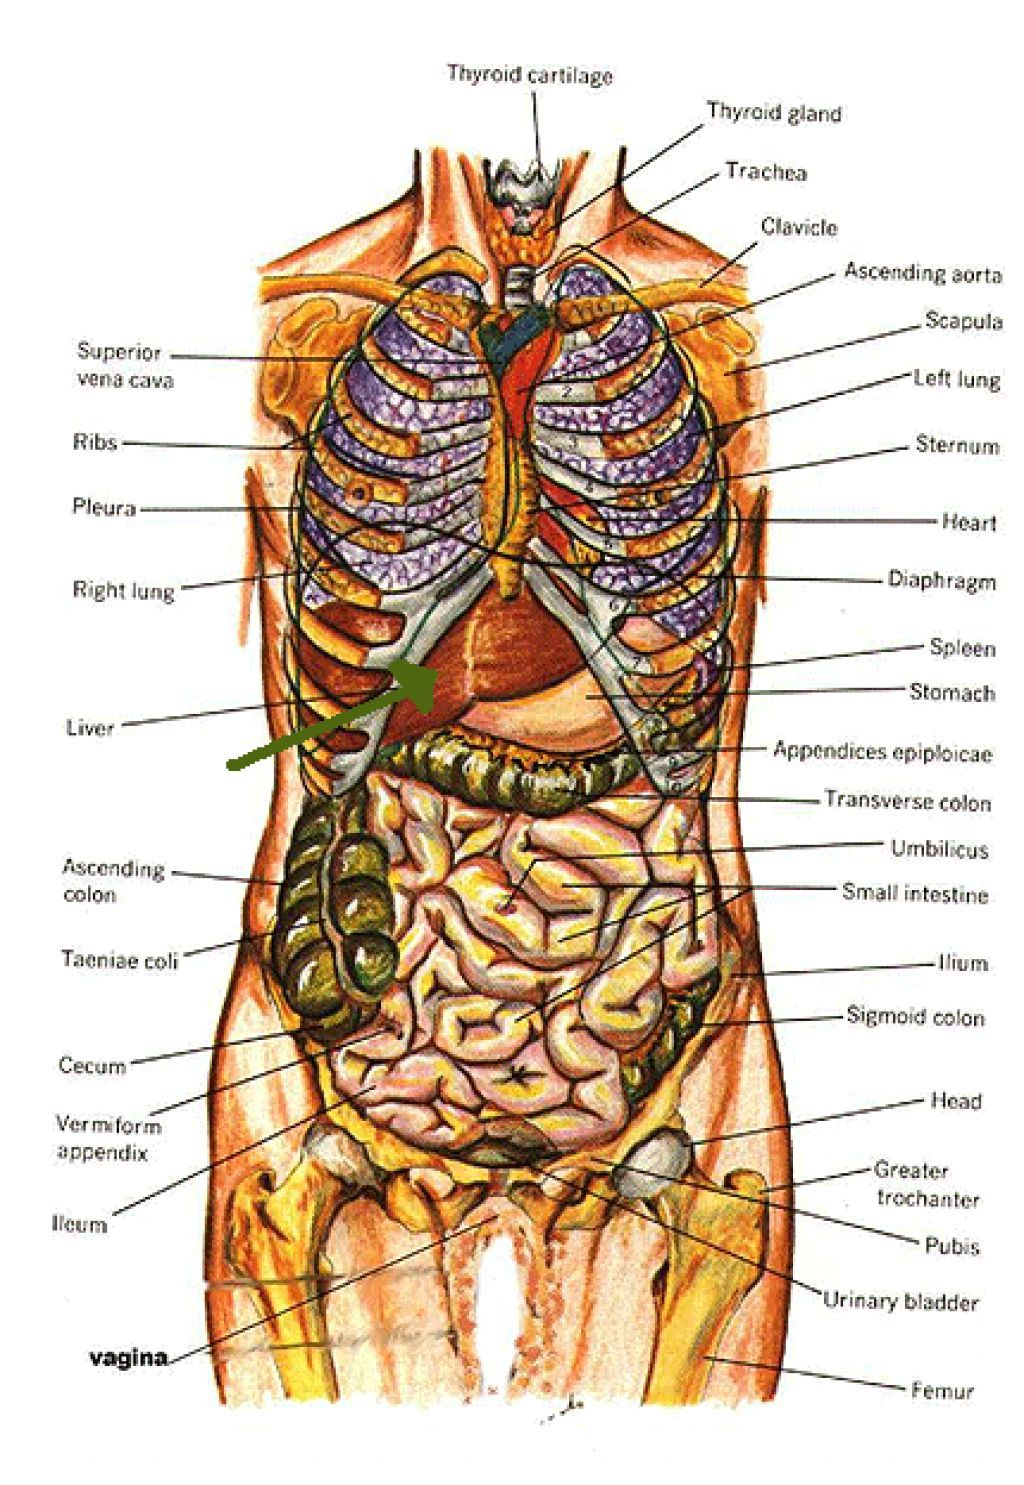 Organ Map Human Body Human Body Anatomy Human Body Organs Human